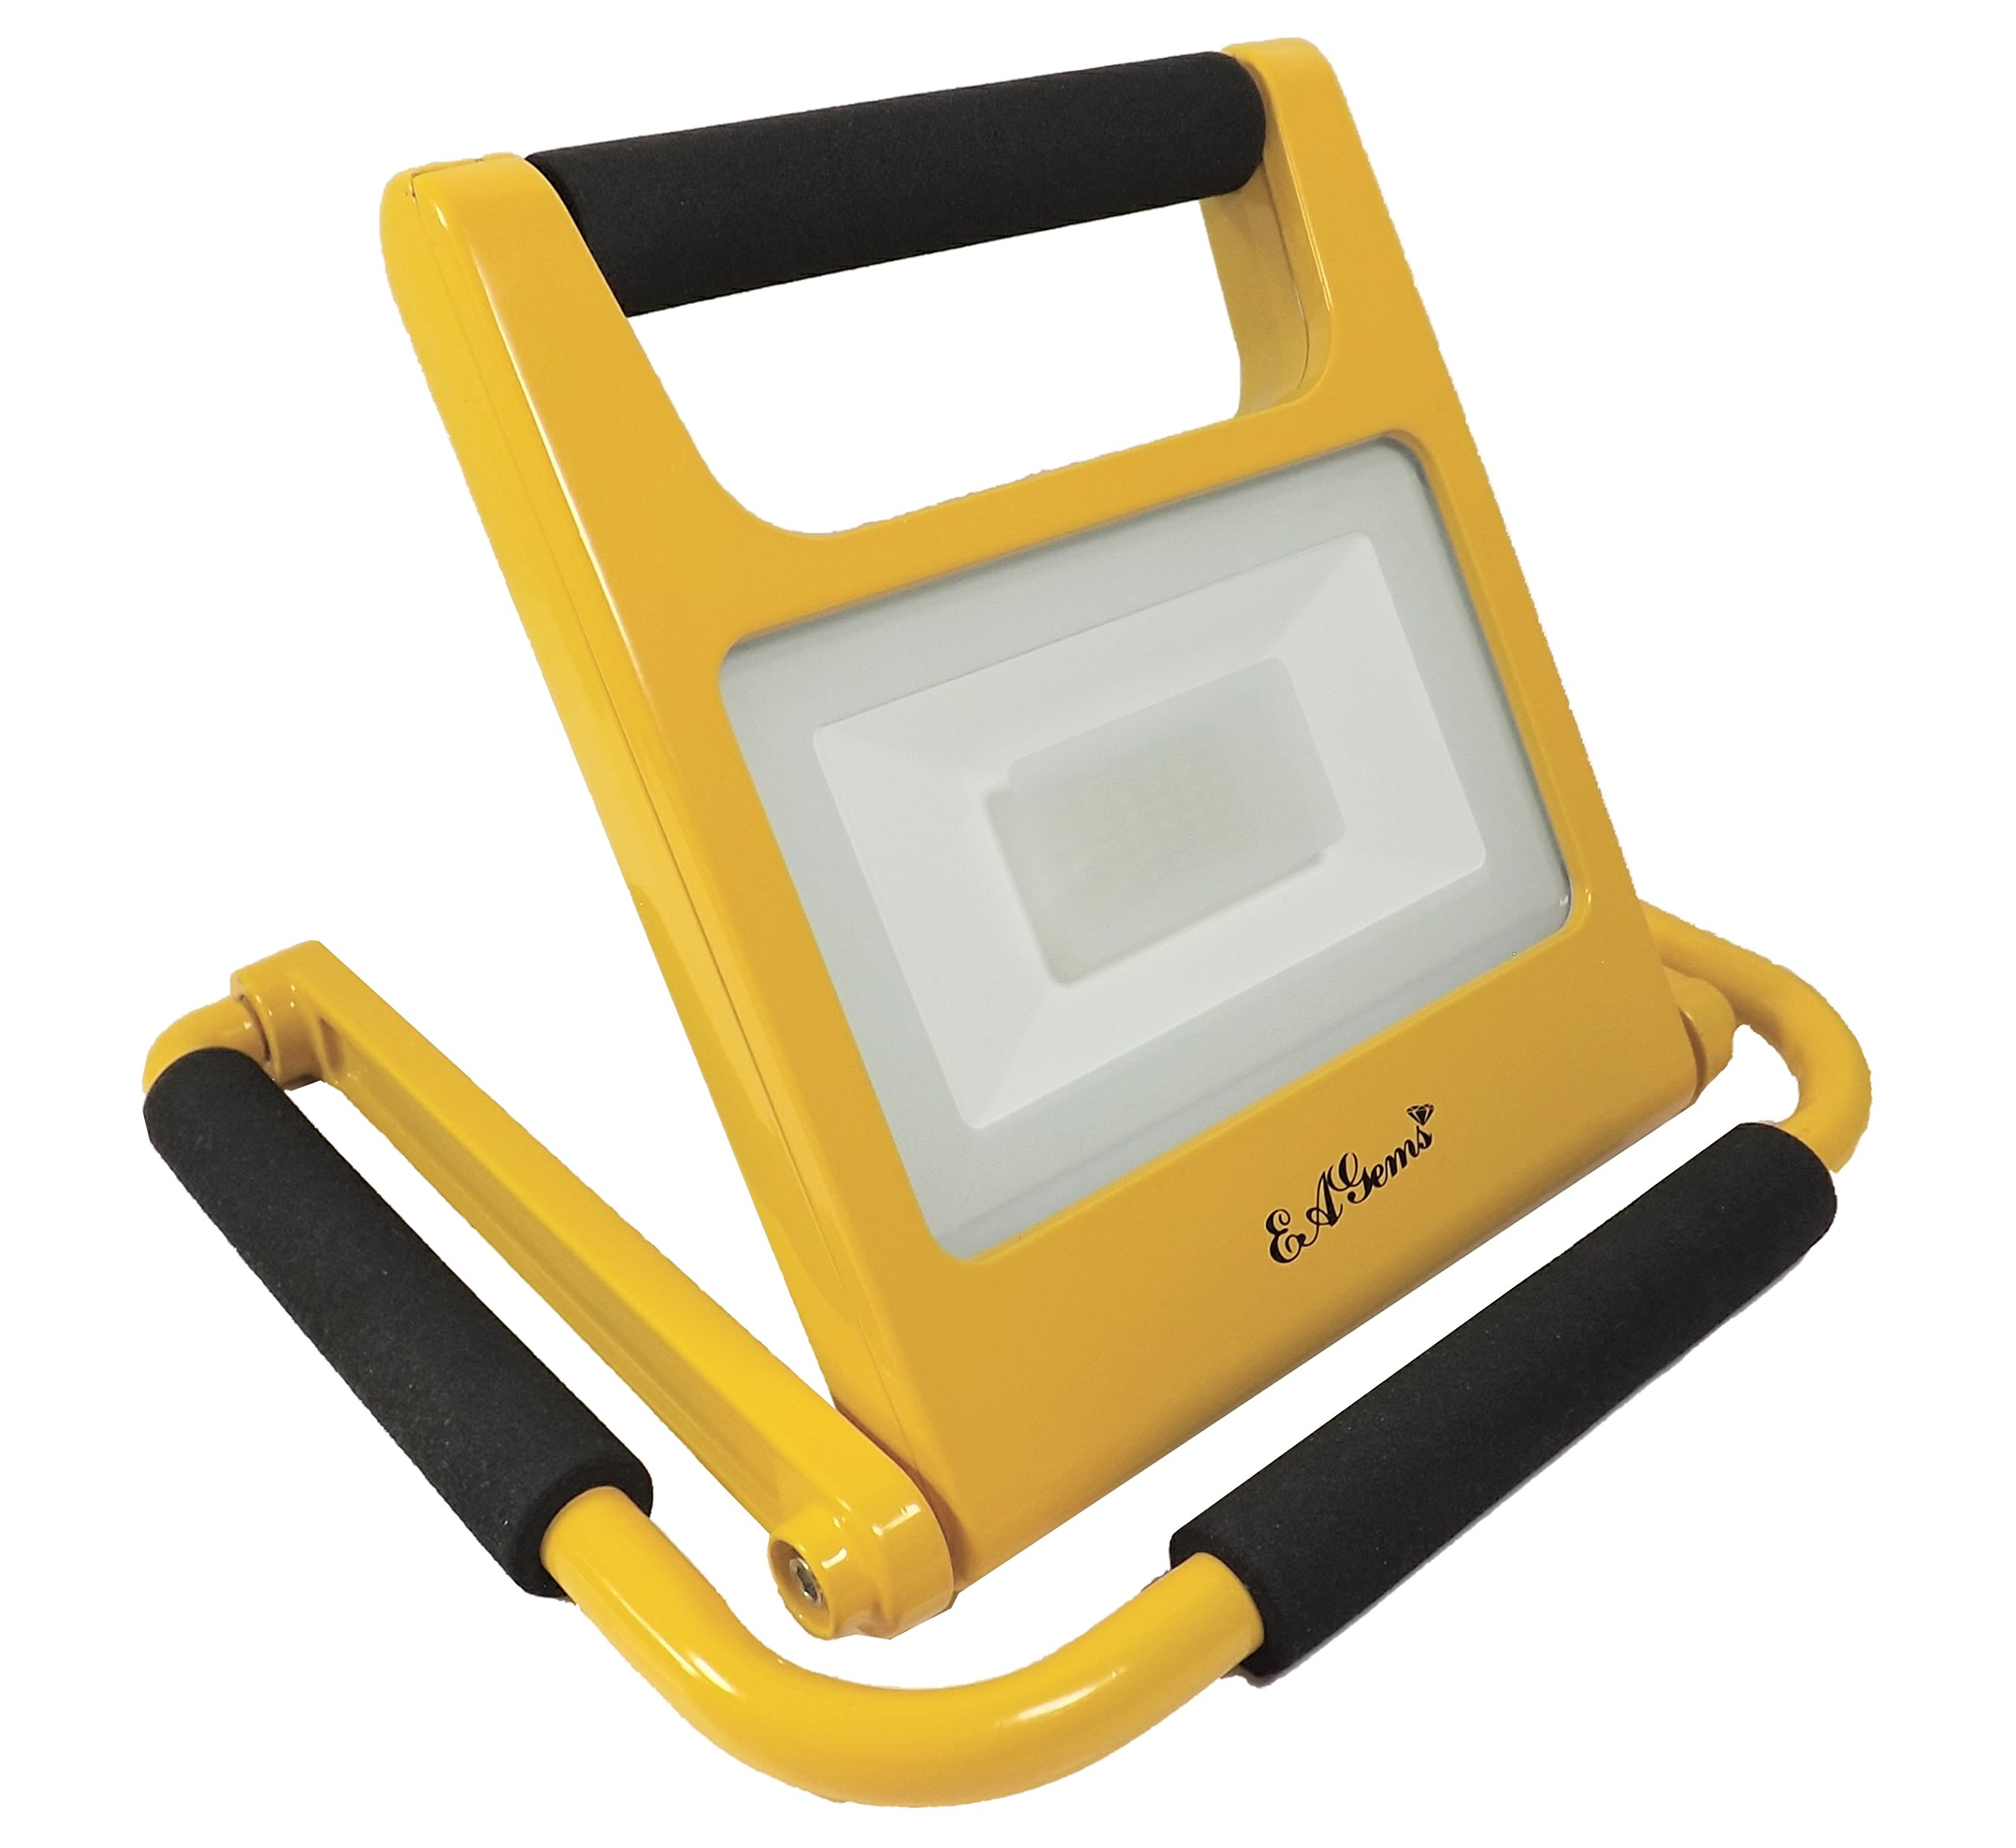 EAGems Portable LED Work Light - Rechargeable, Bright 20 Watt Lamp, Great for Home-Office-Car-Outside/in, Use in Emergency, As Spotlight, Carry Like a Flashlight - Adjustable 360 Degrees, Yellow